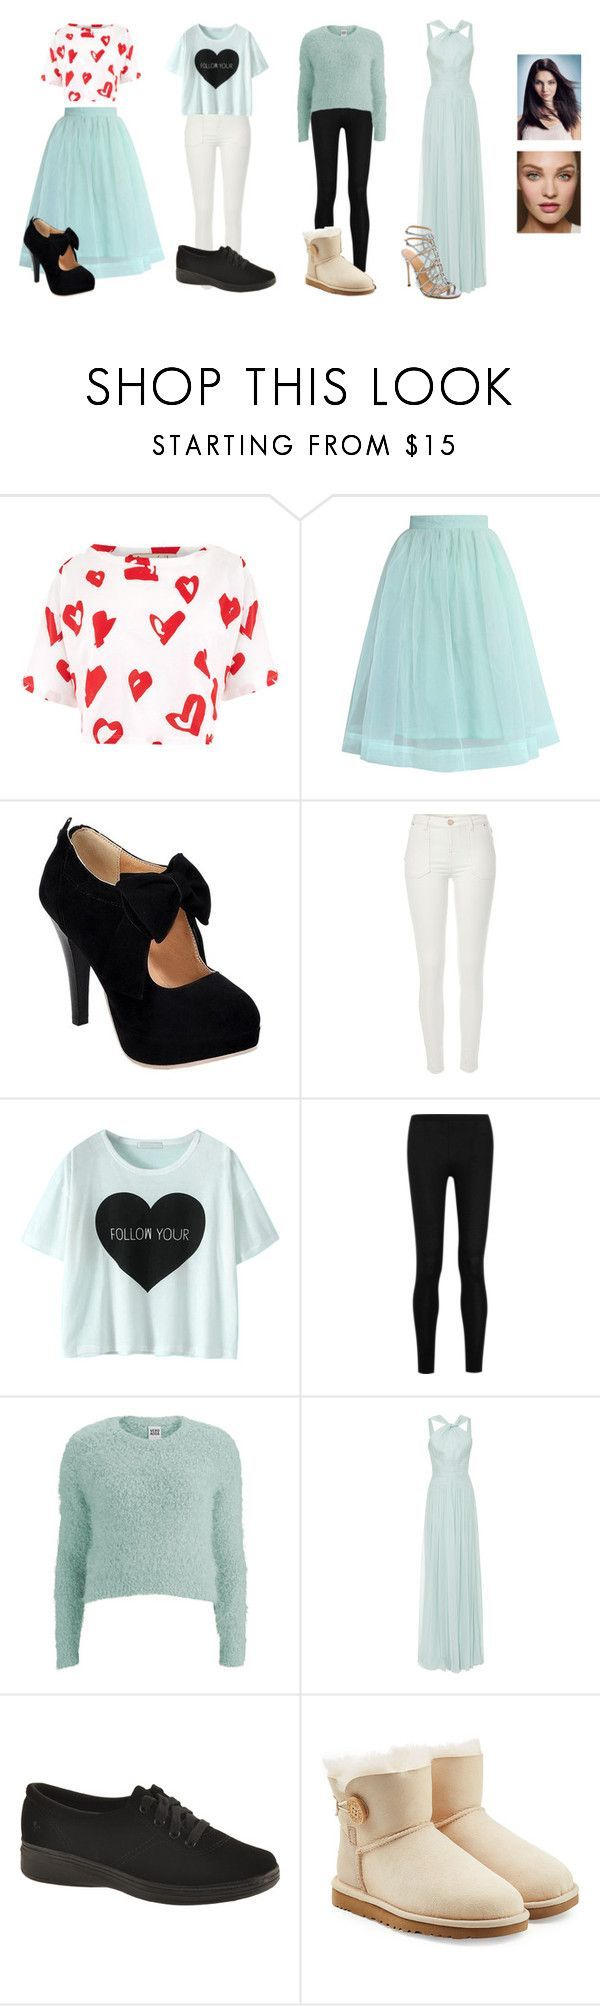 """""""Modern Eliza Hamilton-Schuyler   Hamilton"""" by broadwayfangirl ❤ liked on Polyvore featuring Être Cécile, Chicwish, River Island, Donna Karan, Vero Moda, Elie Saab, Grasshoppers, UGG Australia, Sergio Rossi and modern"""